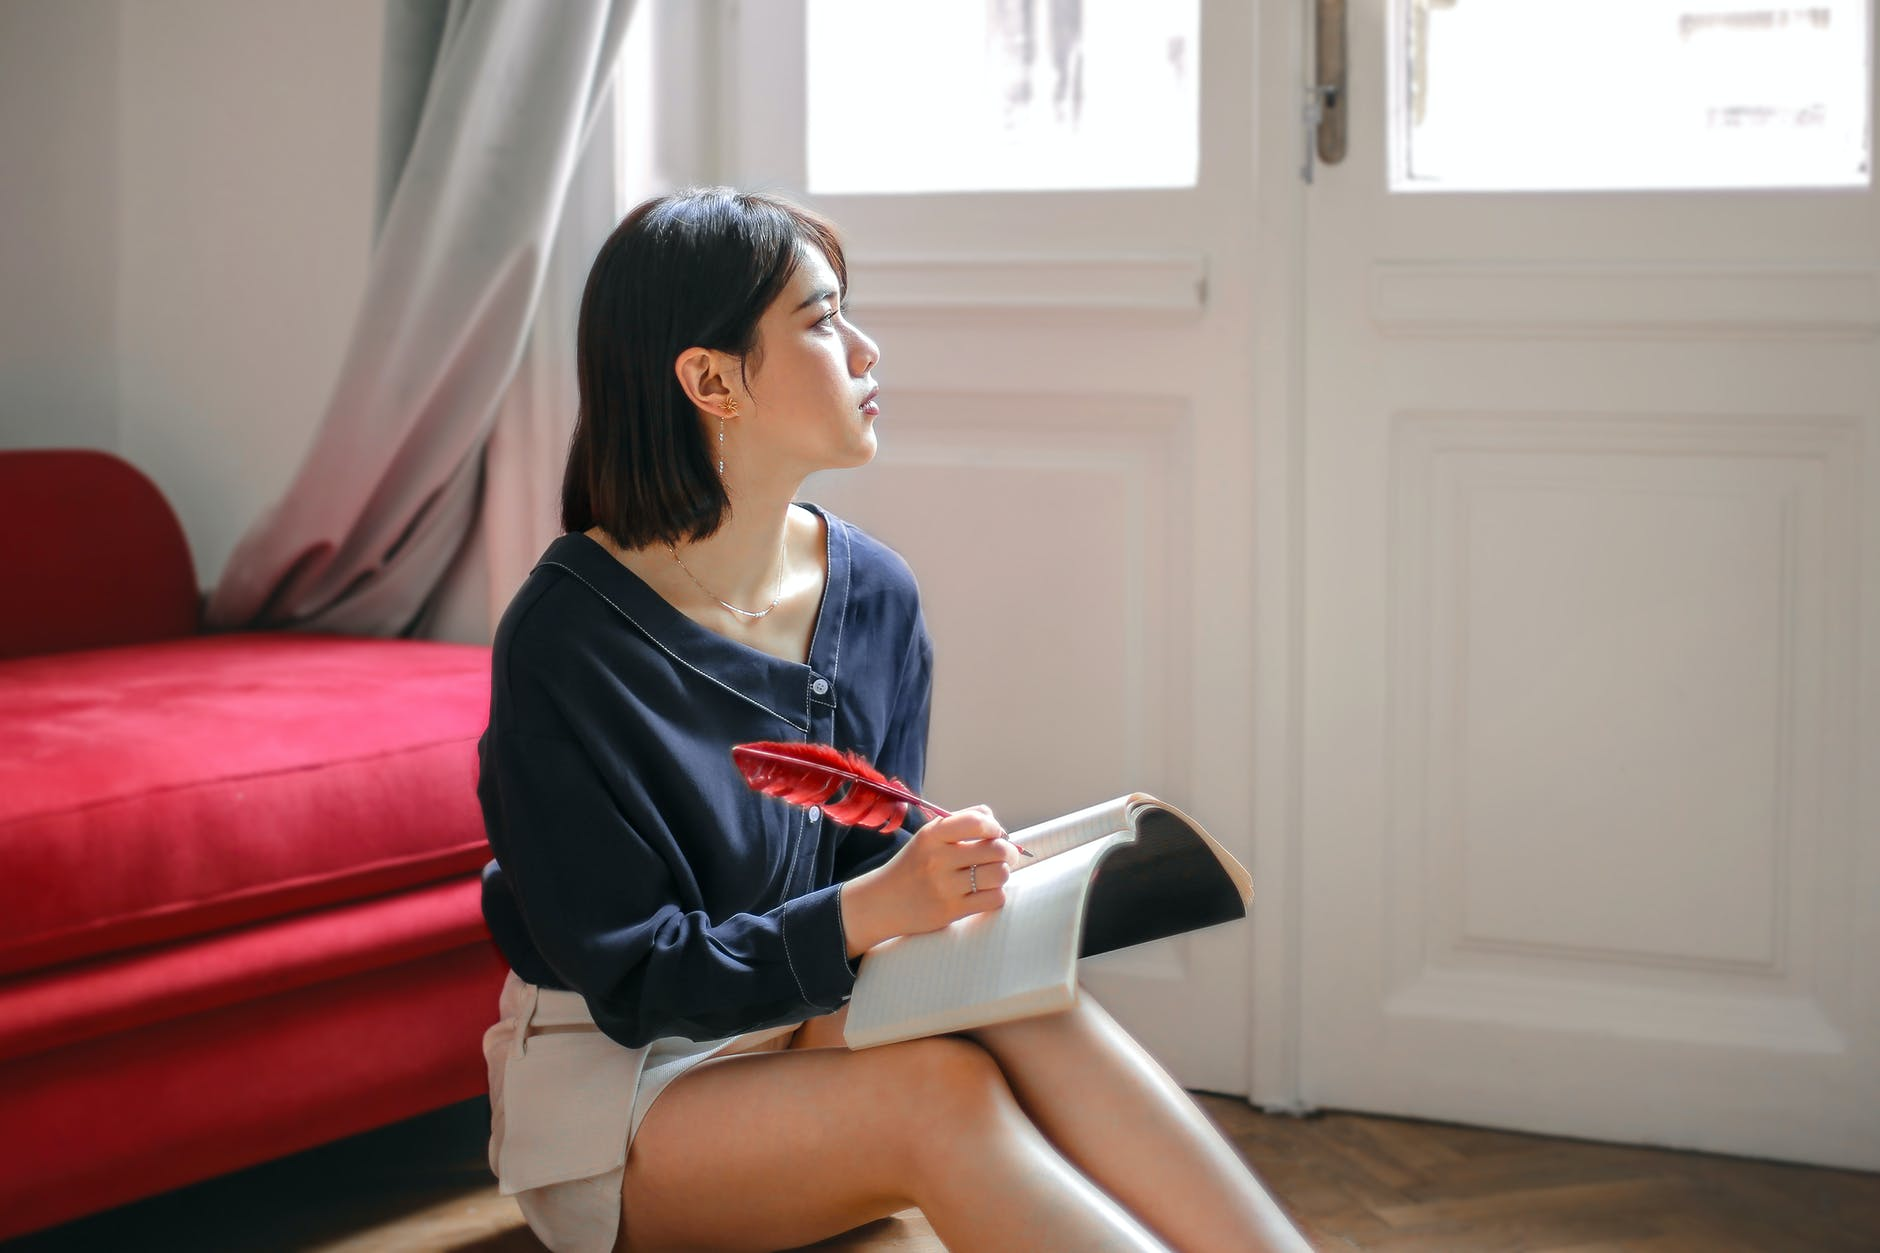 thoughtful woman writing in notebook at home